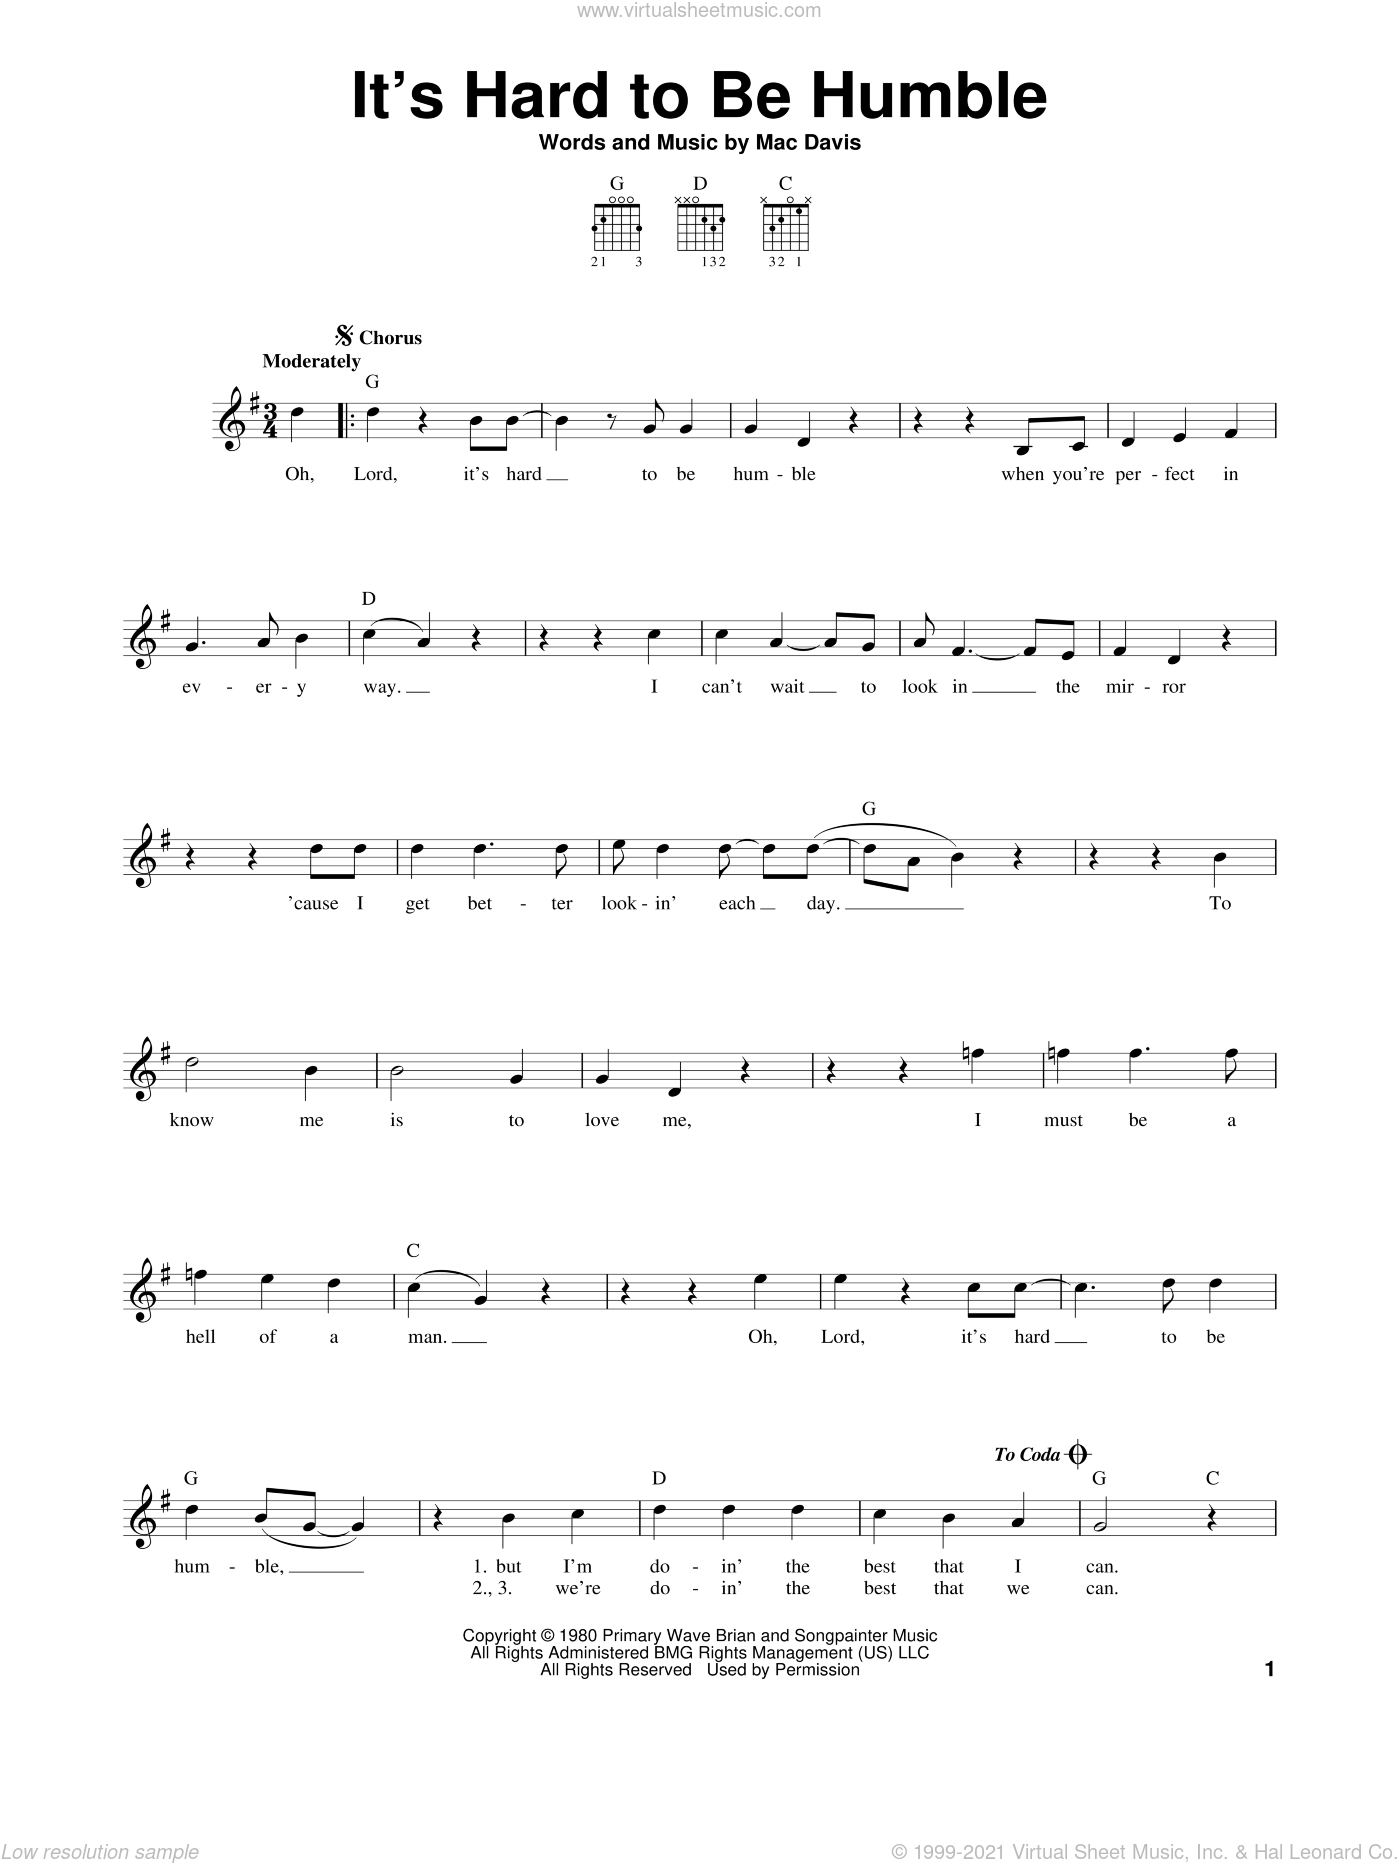 It's Hard To Be Humble sheet music for guitar solo (chords) by Mac Davis, easy guitar (chords). Score Image Preview.